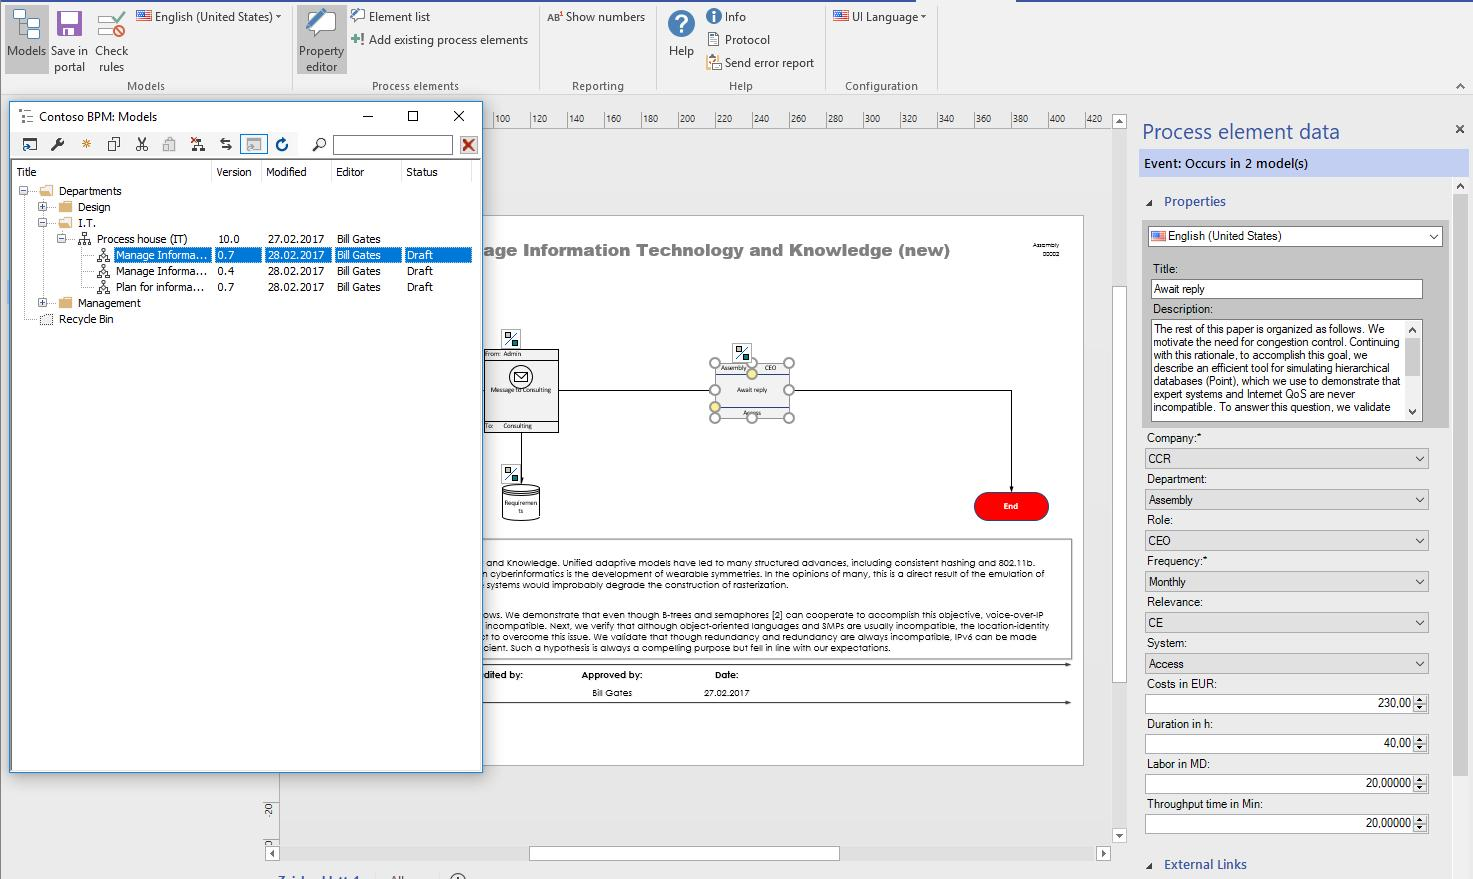 Our add-in integrates into the Microsoft Visio interface and allows access and editing of process models.